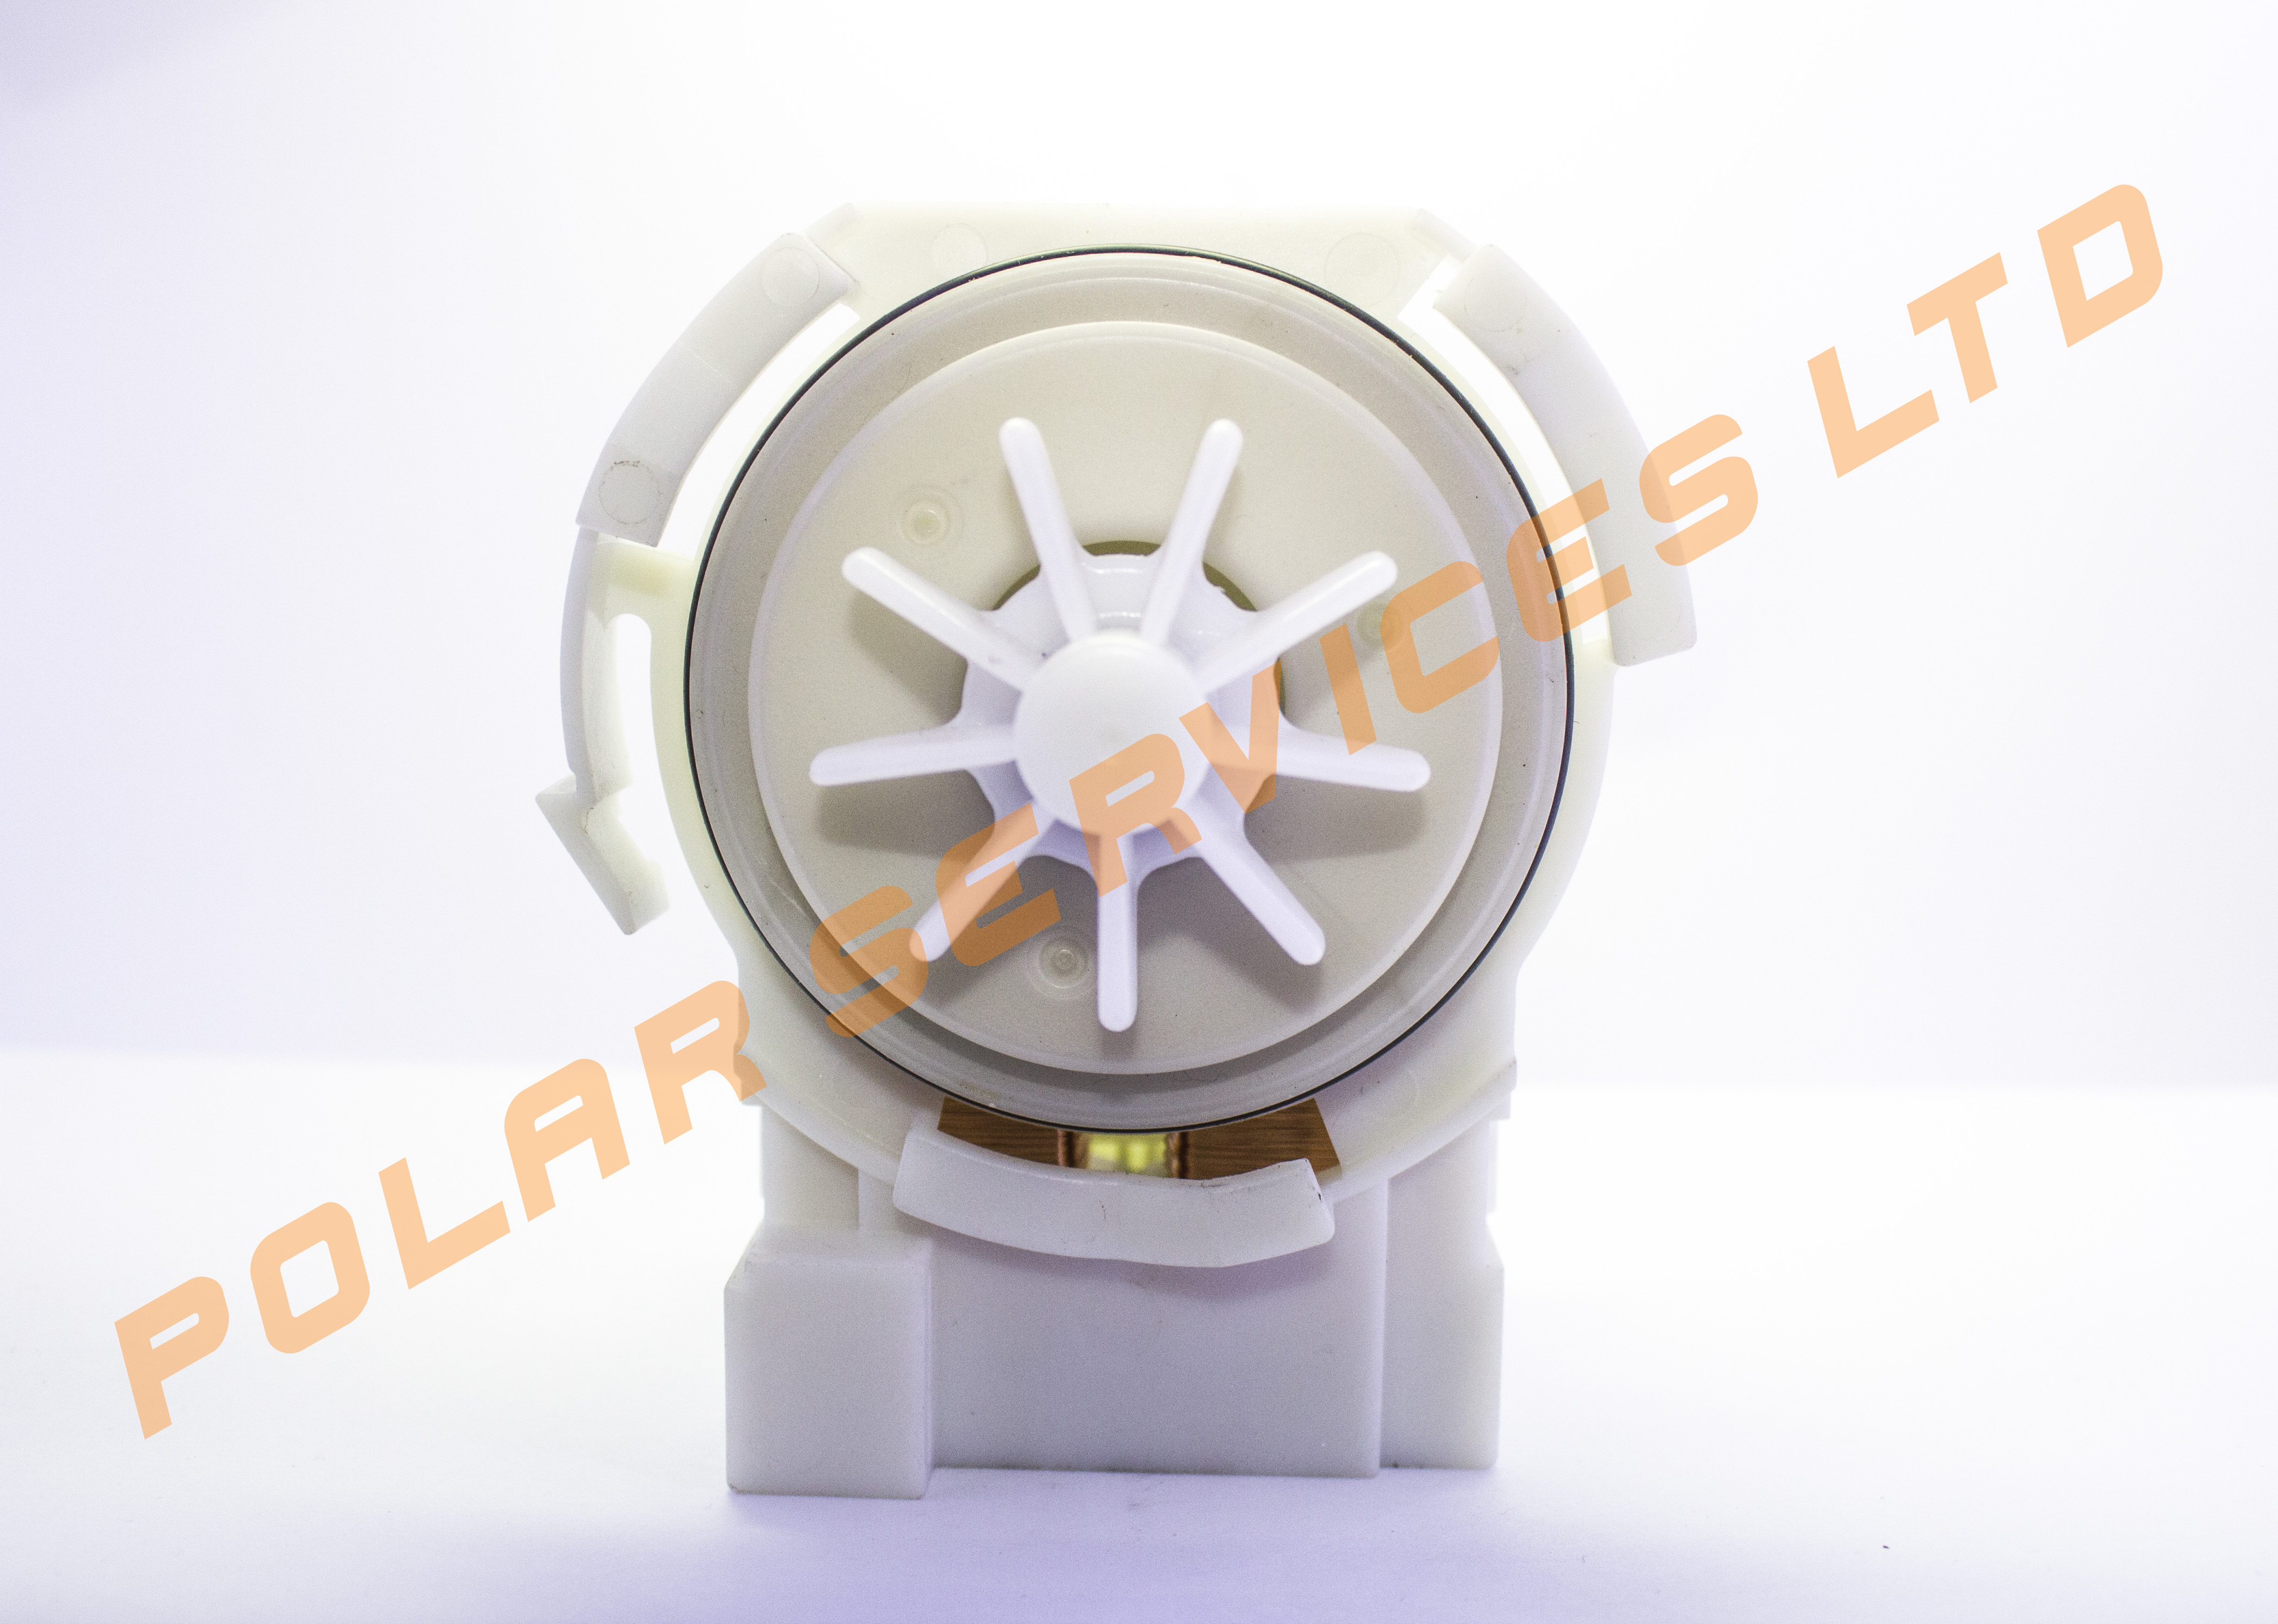 WASHING MACHINE DRAIN PUMP WITH THERMAL PROTECTOR AND BAYONET FIXING, FAGOR/ THOMSON/ BRANDT/ EDESA V991000D7/ V991000H1 Malta, 								Washing Machine Malta, Polar Services LTD Malta Malta